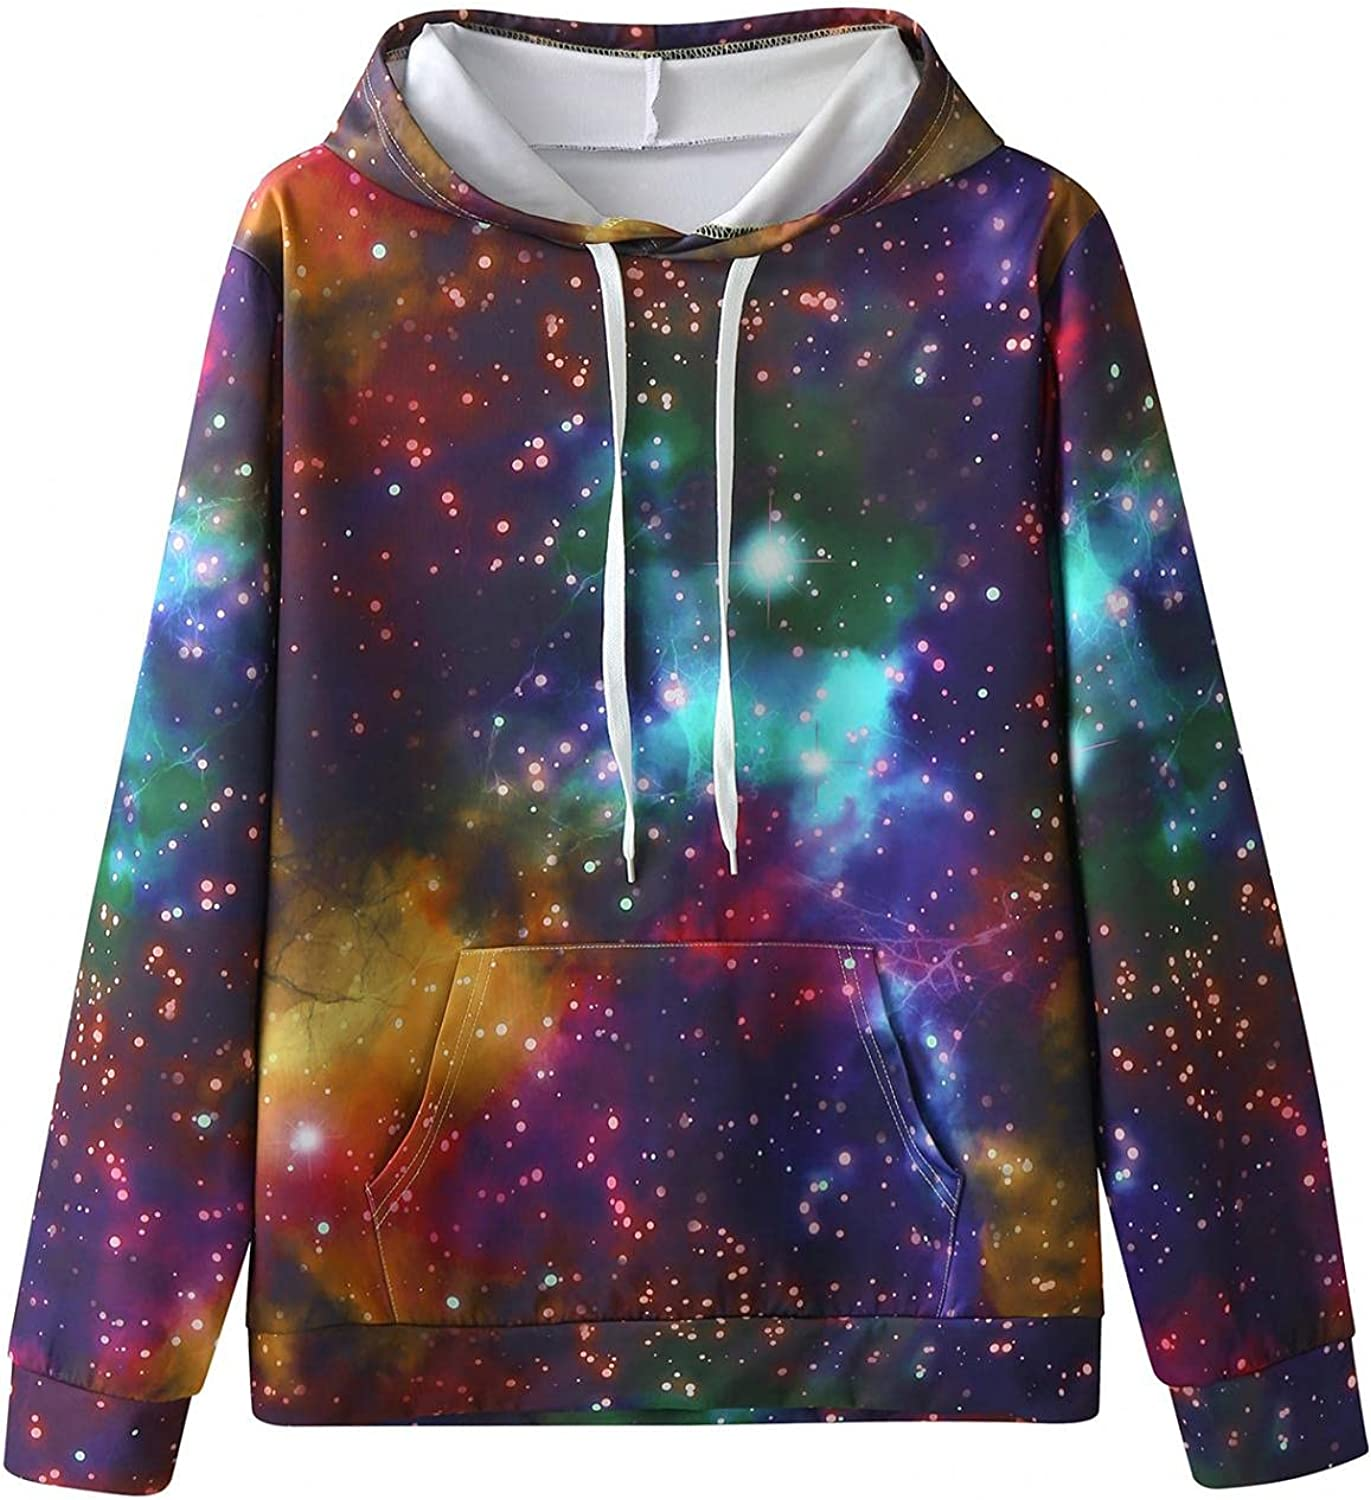 Qsctys Men's Sweatshirts Hoodies Crewneck 3D Print Lightweight Fashion Hipster Long Sleeve Slim Fit Hooded Casual Pullover